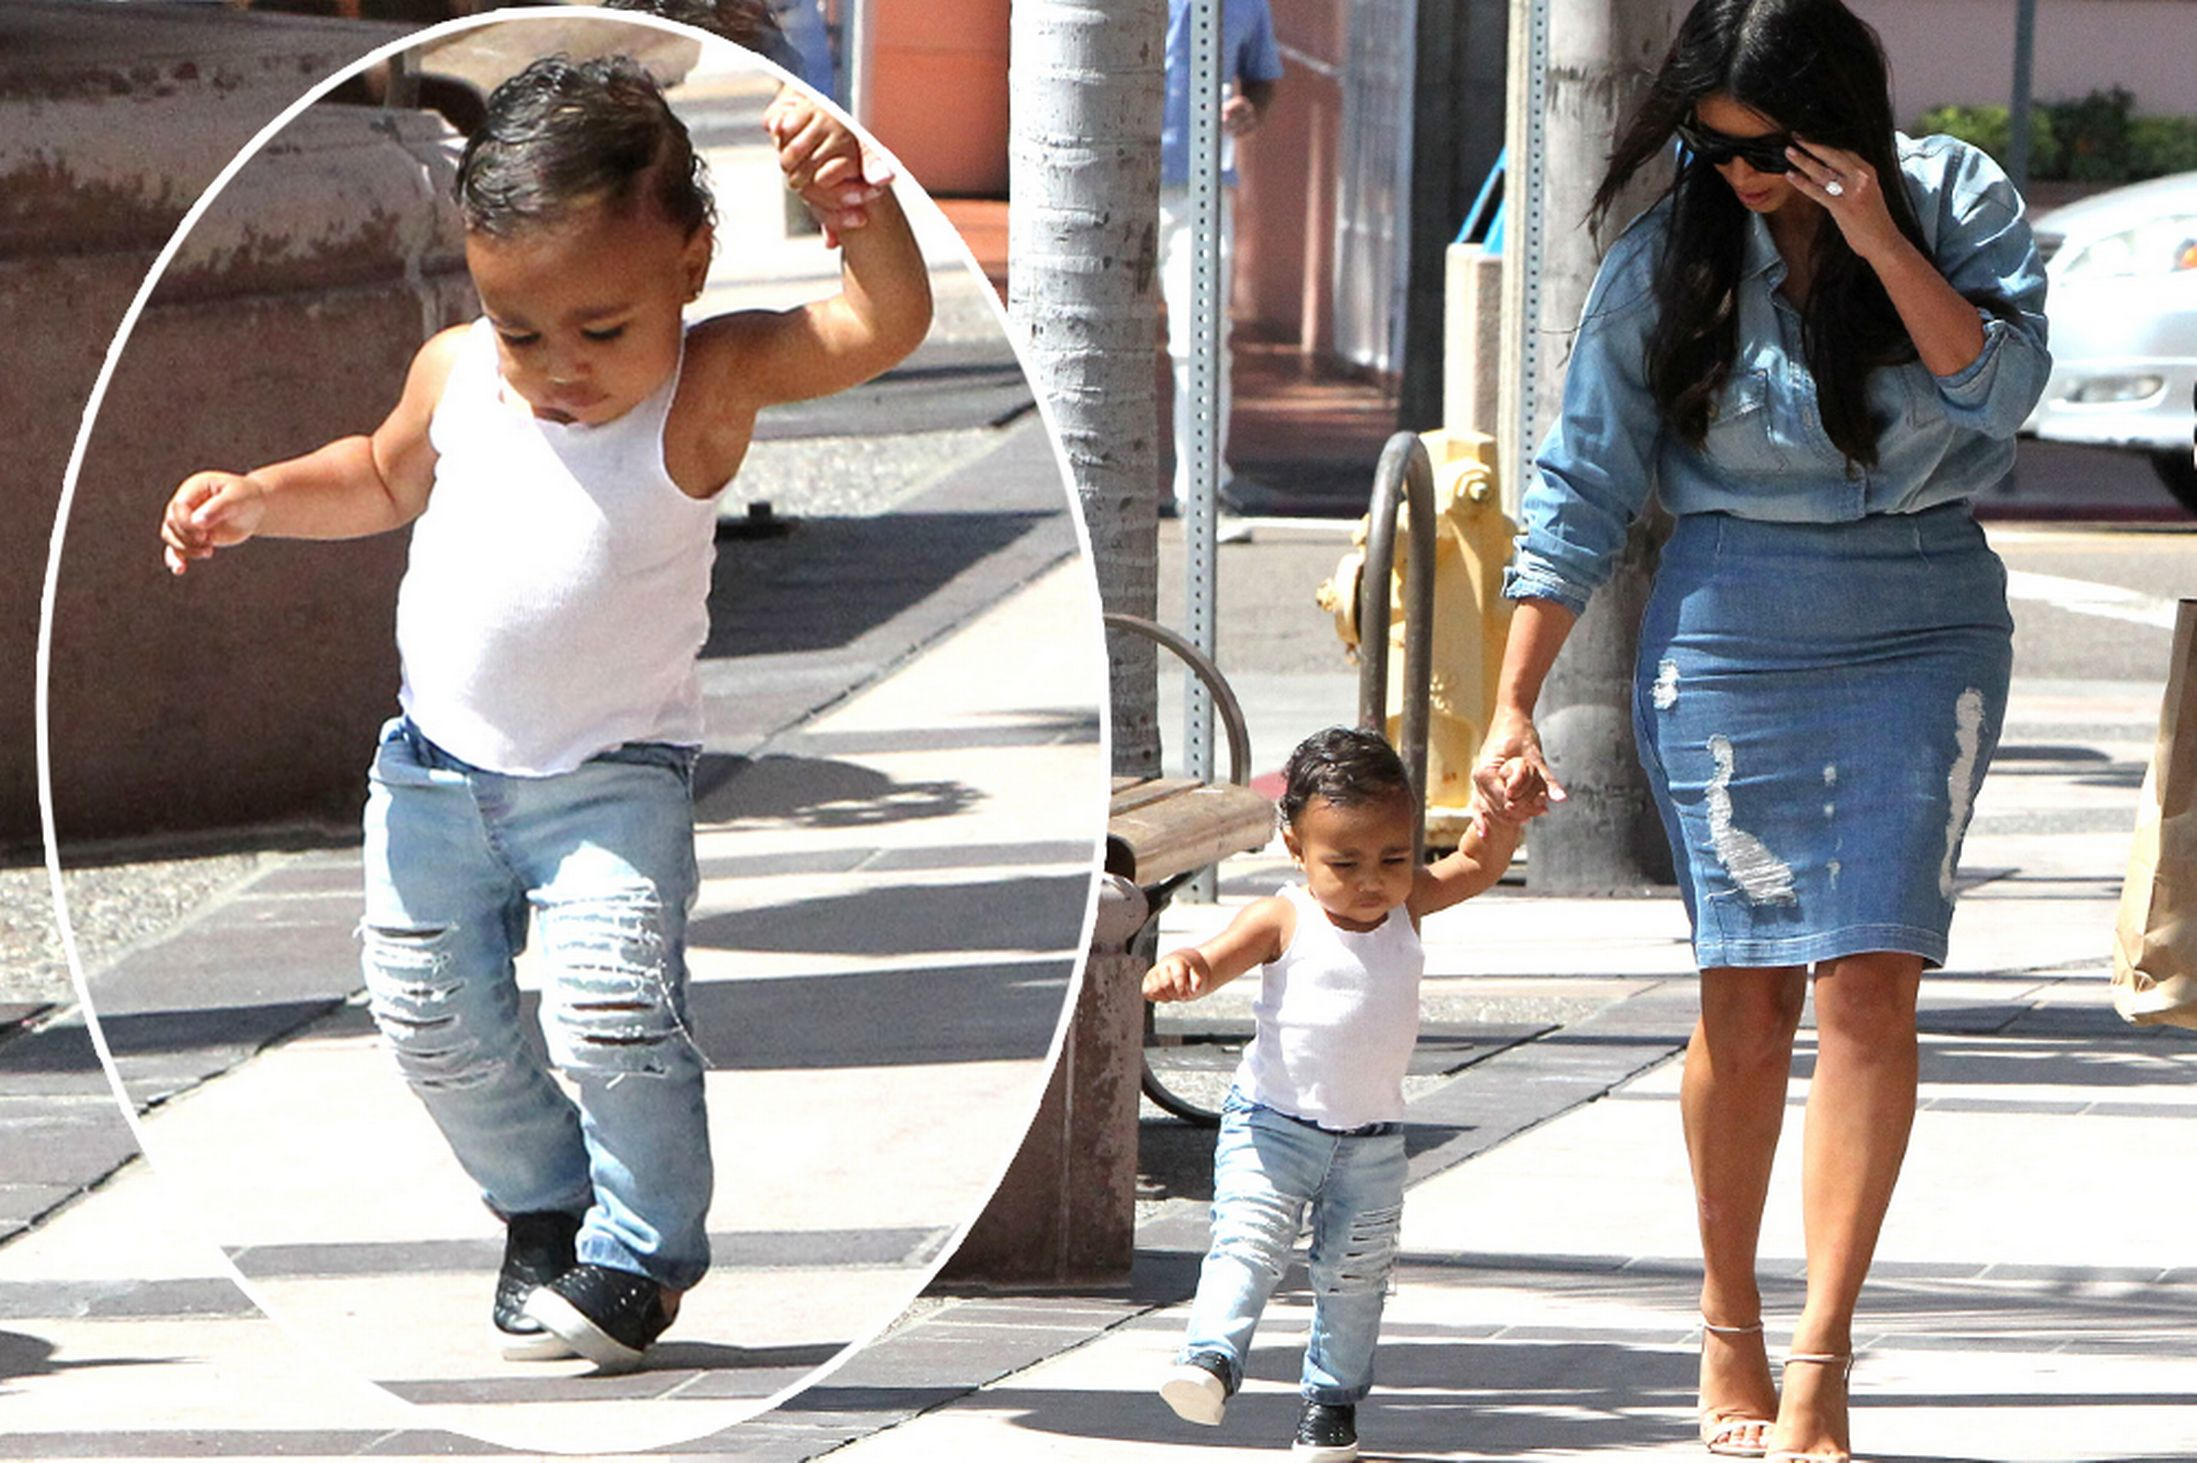 more photos of the stylish baby with her hot momma